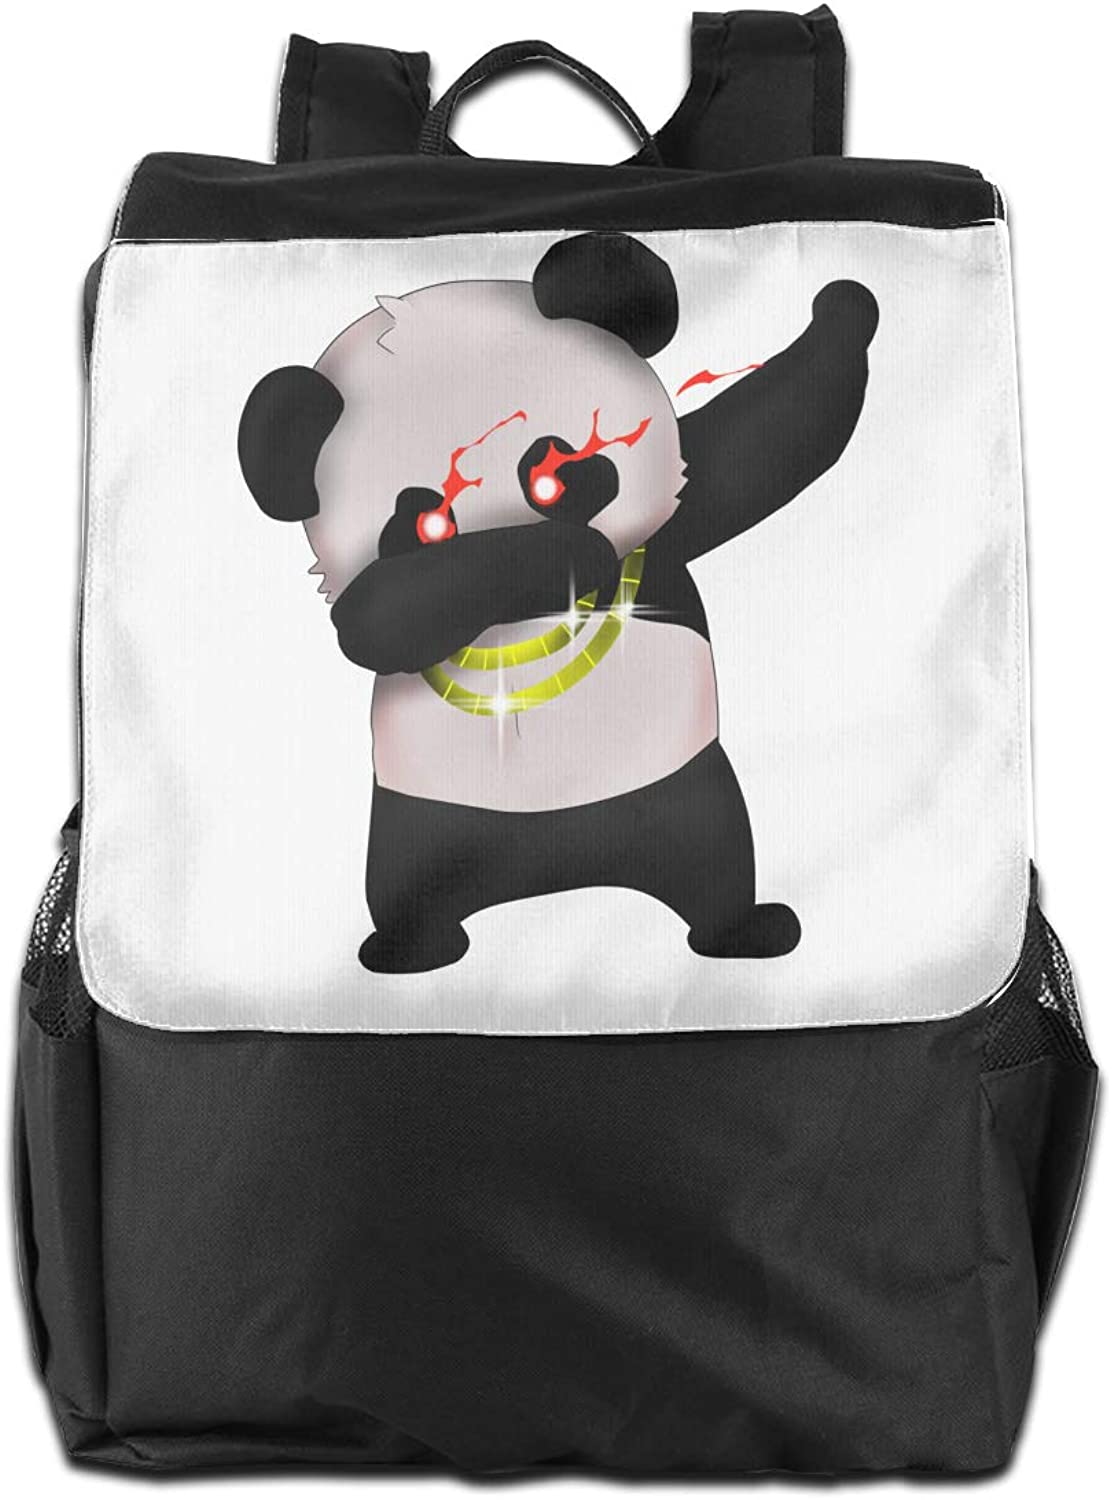 Skr Panda golden Chain Printed Boys Backpack Lightweight Casual Shoulder Bag School Bookbags